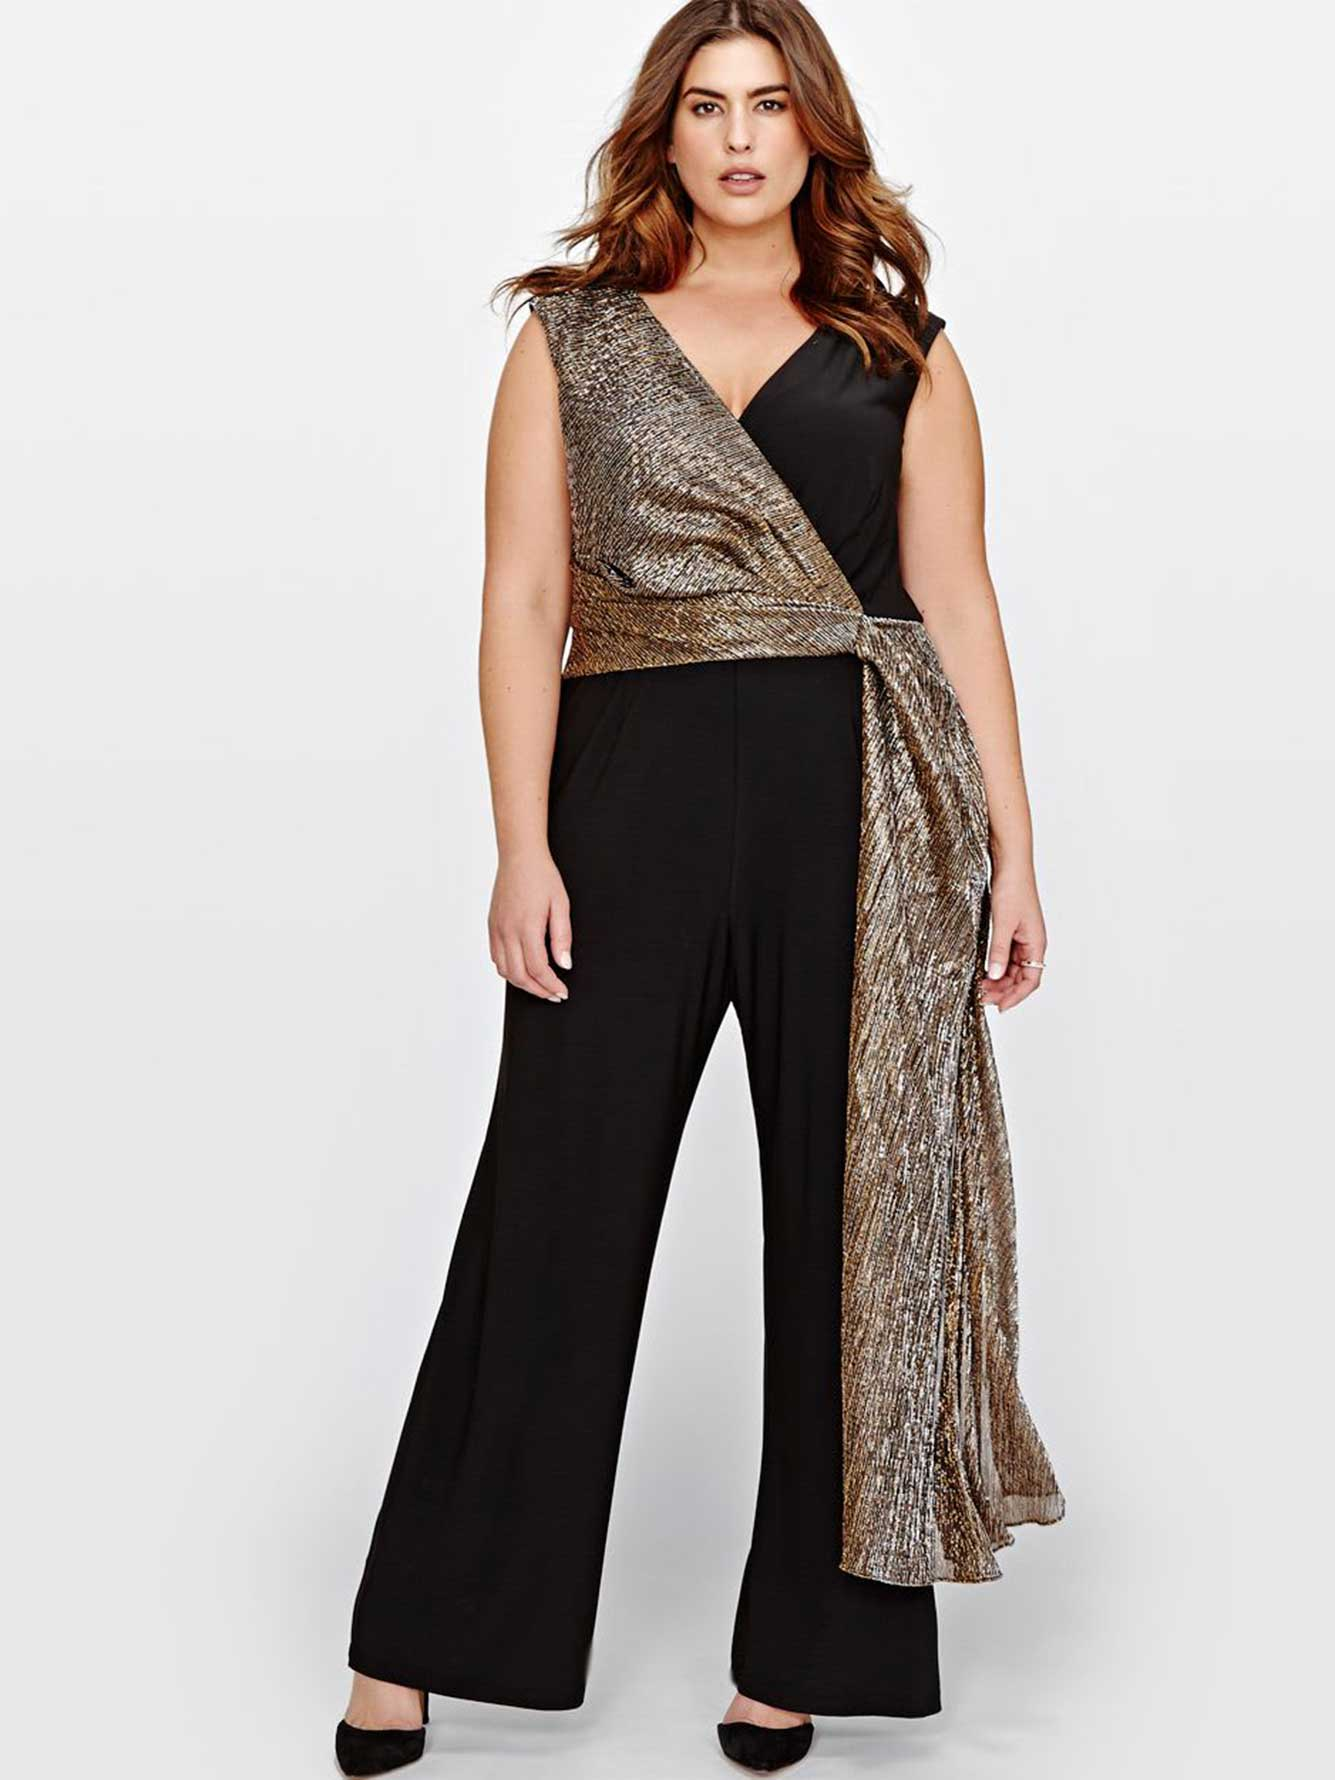 Shop our Collection of Women's Jumpsuits & Rompers at liveblog.ga for the Latest Designer Brands & Styles. FREE SHIPPING AVAILABLE!